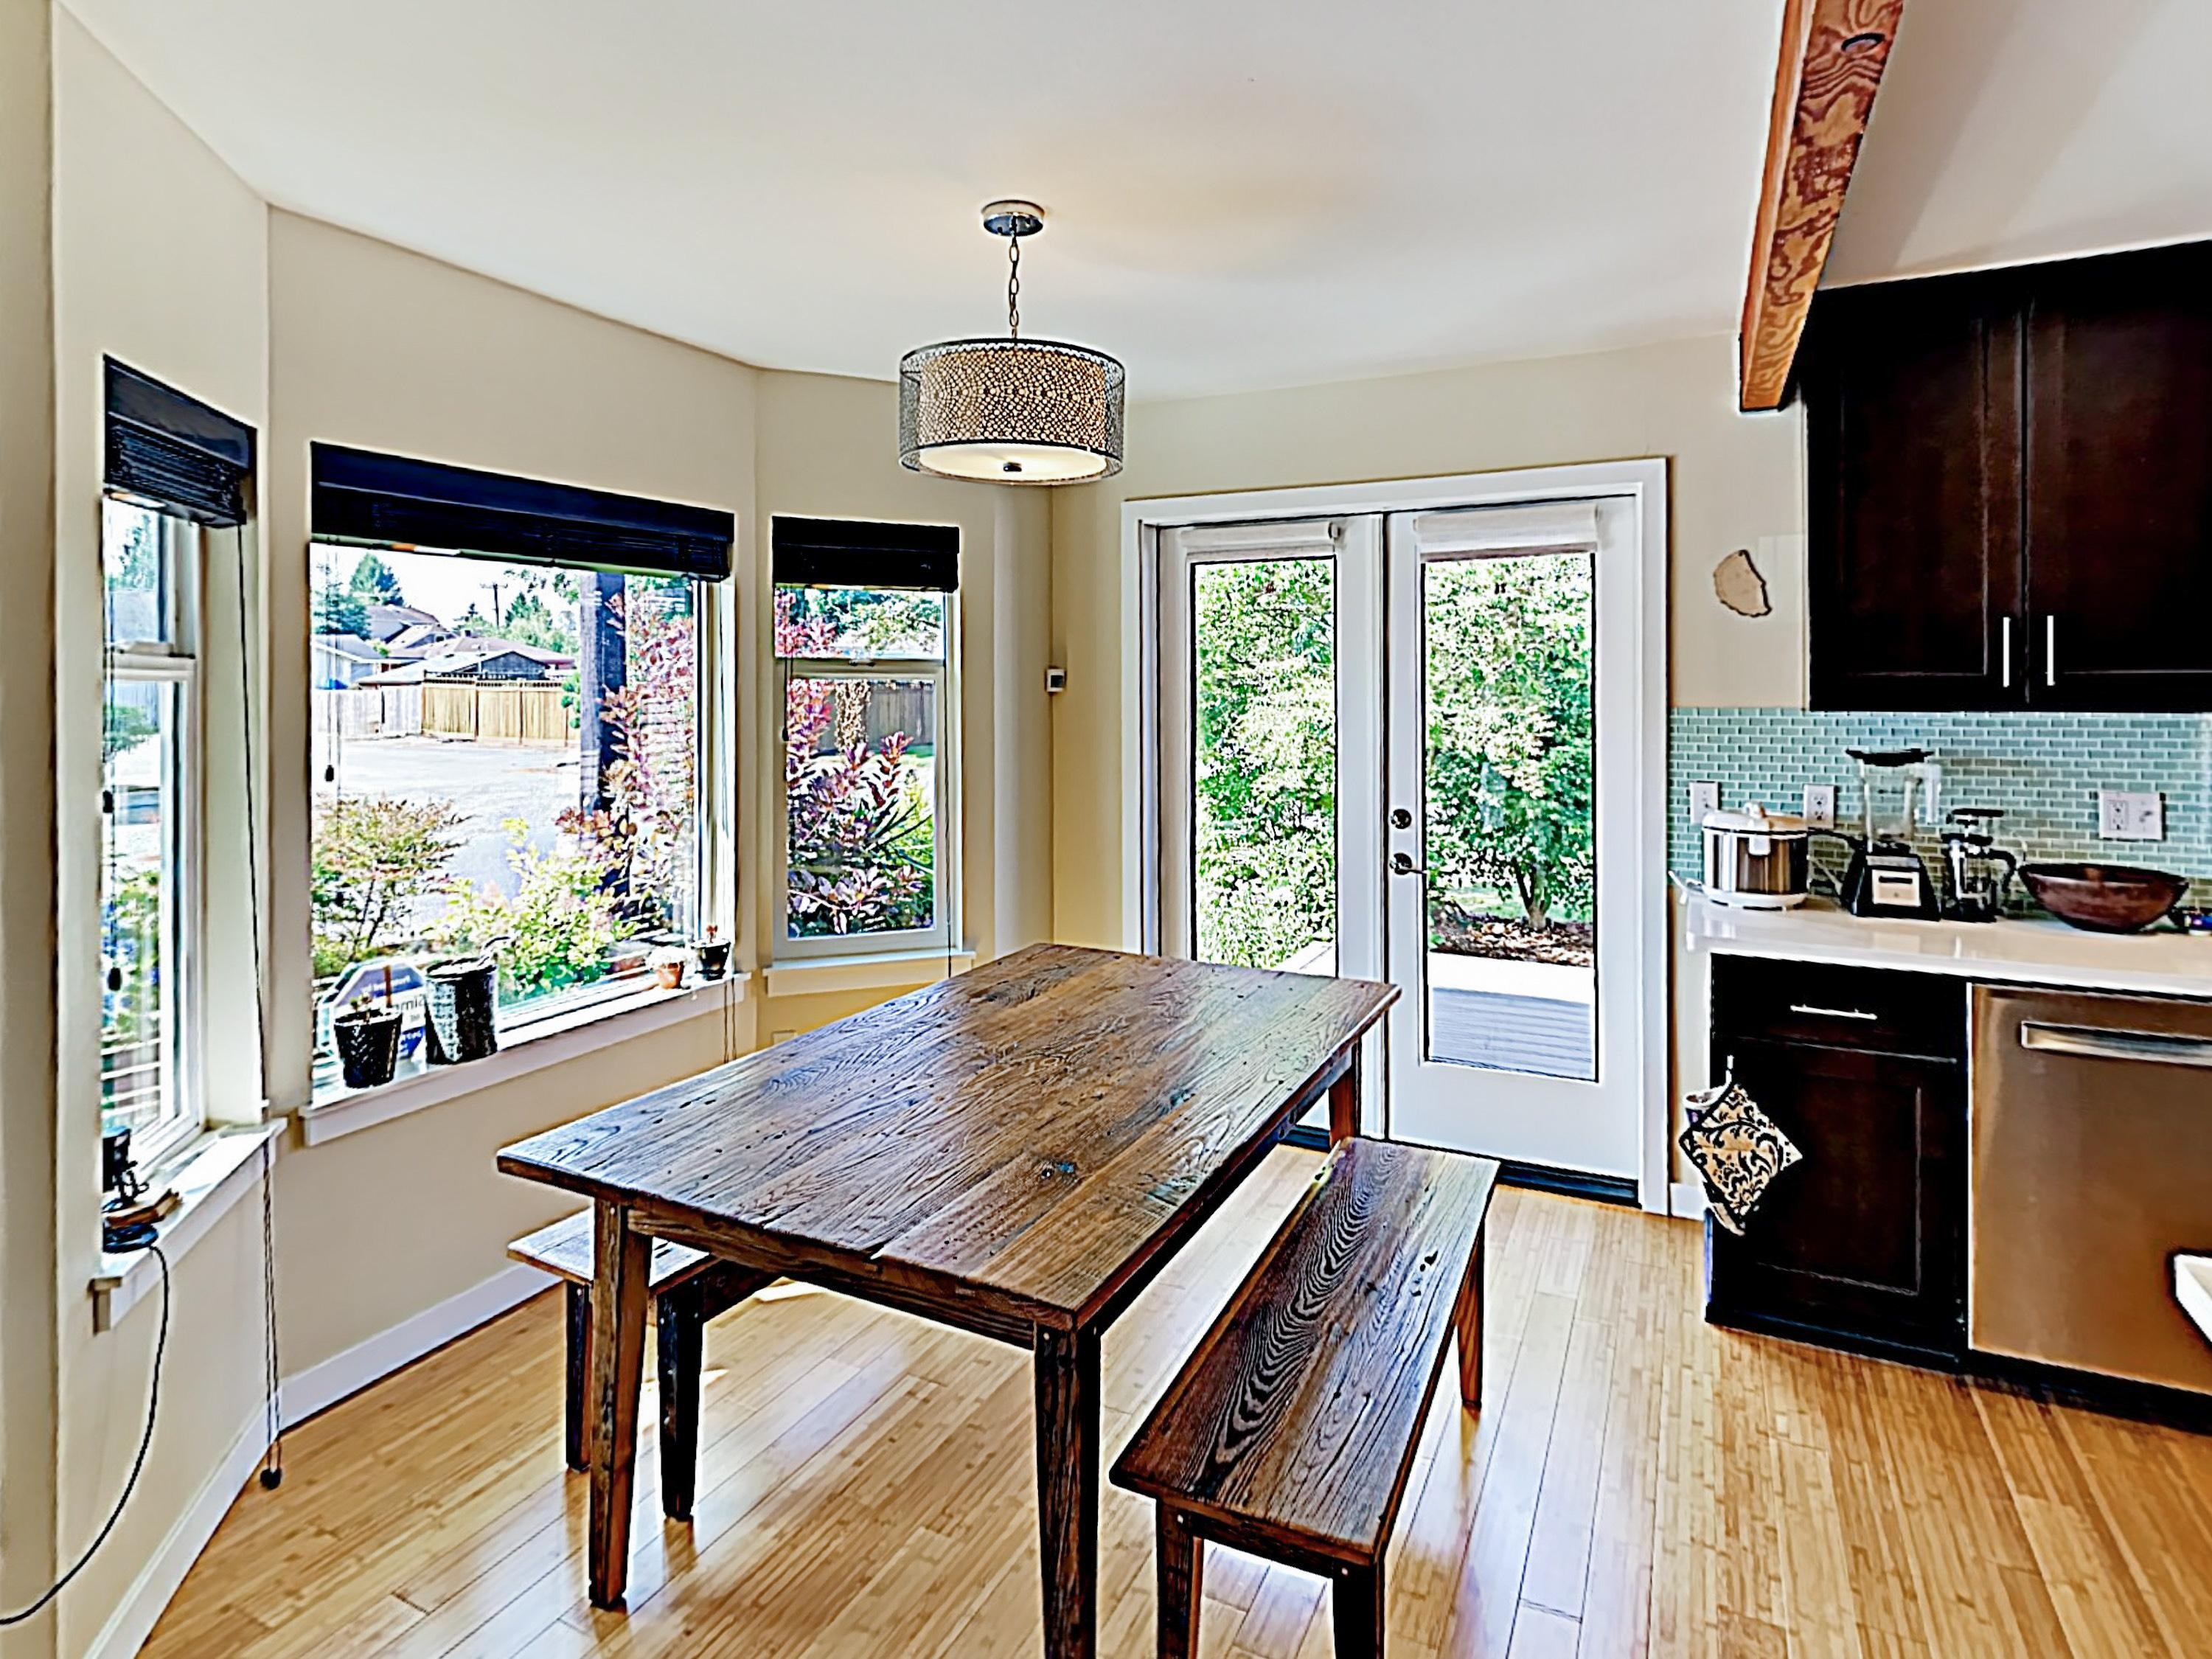 The dining area features a wood table and a large bay window.